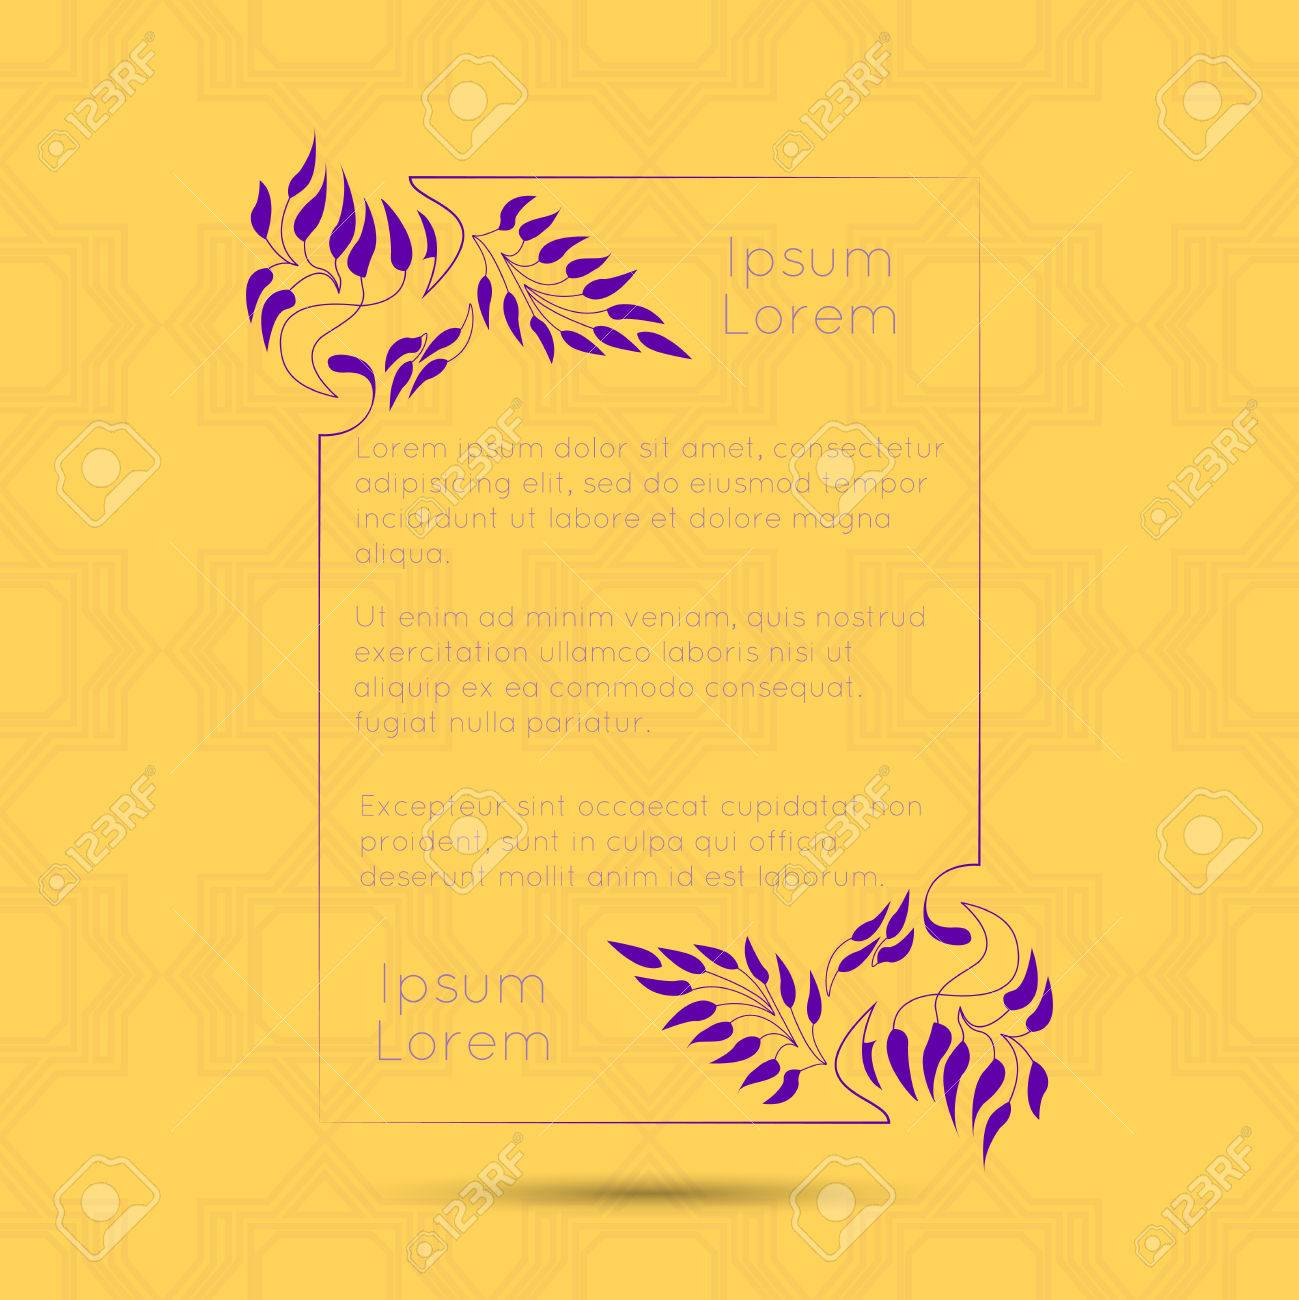 Border designs for greeting cards template design for invitation border designs for greeting cards template design for invitation menu labels poem m4hsunfo